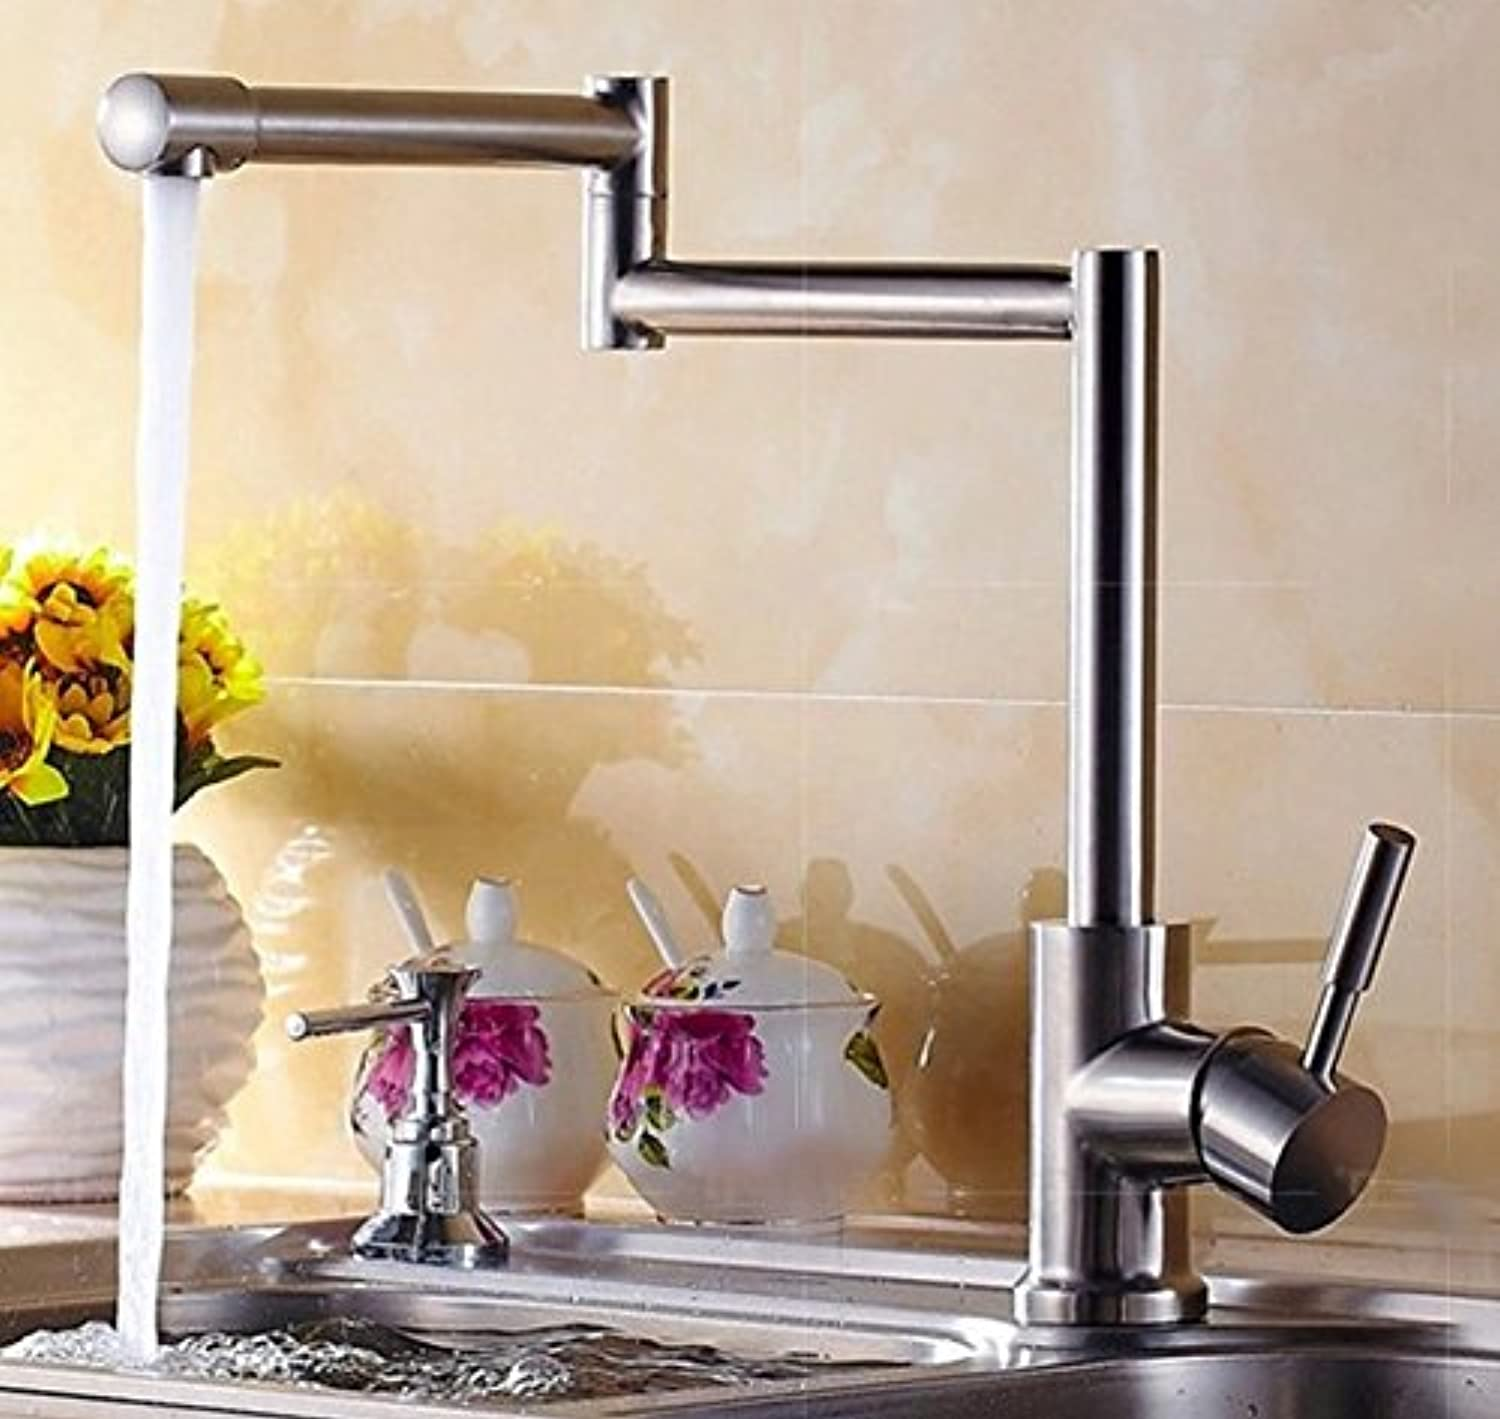 Mangeoo Faucet Cold And Hot Water Mixing Faucet Stainless Steel Faucet Kitchen Folding Faucet Vegetable Basin Drawing Lead